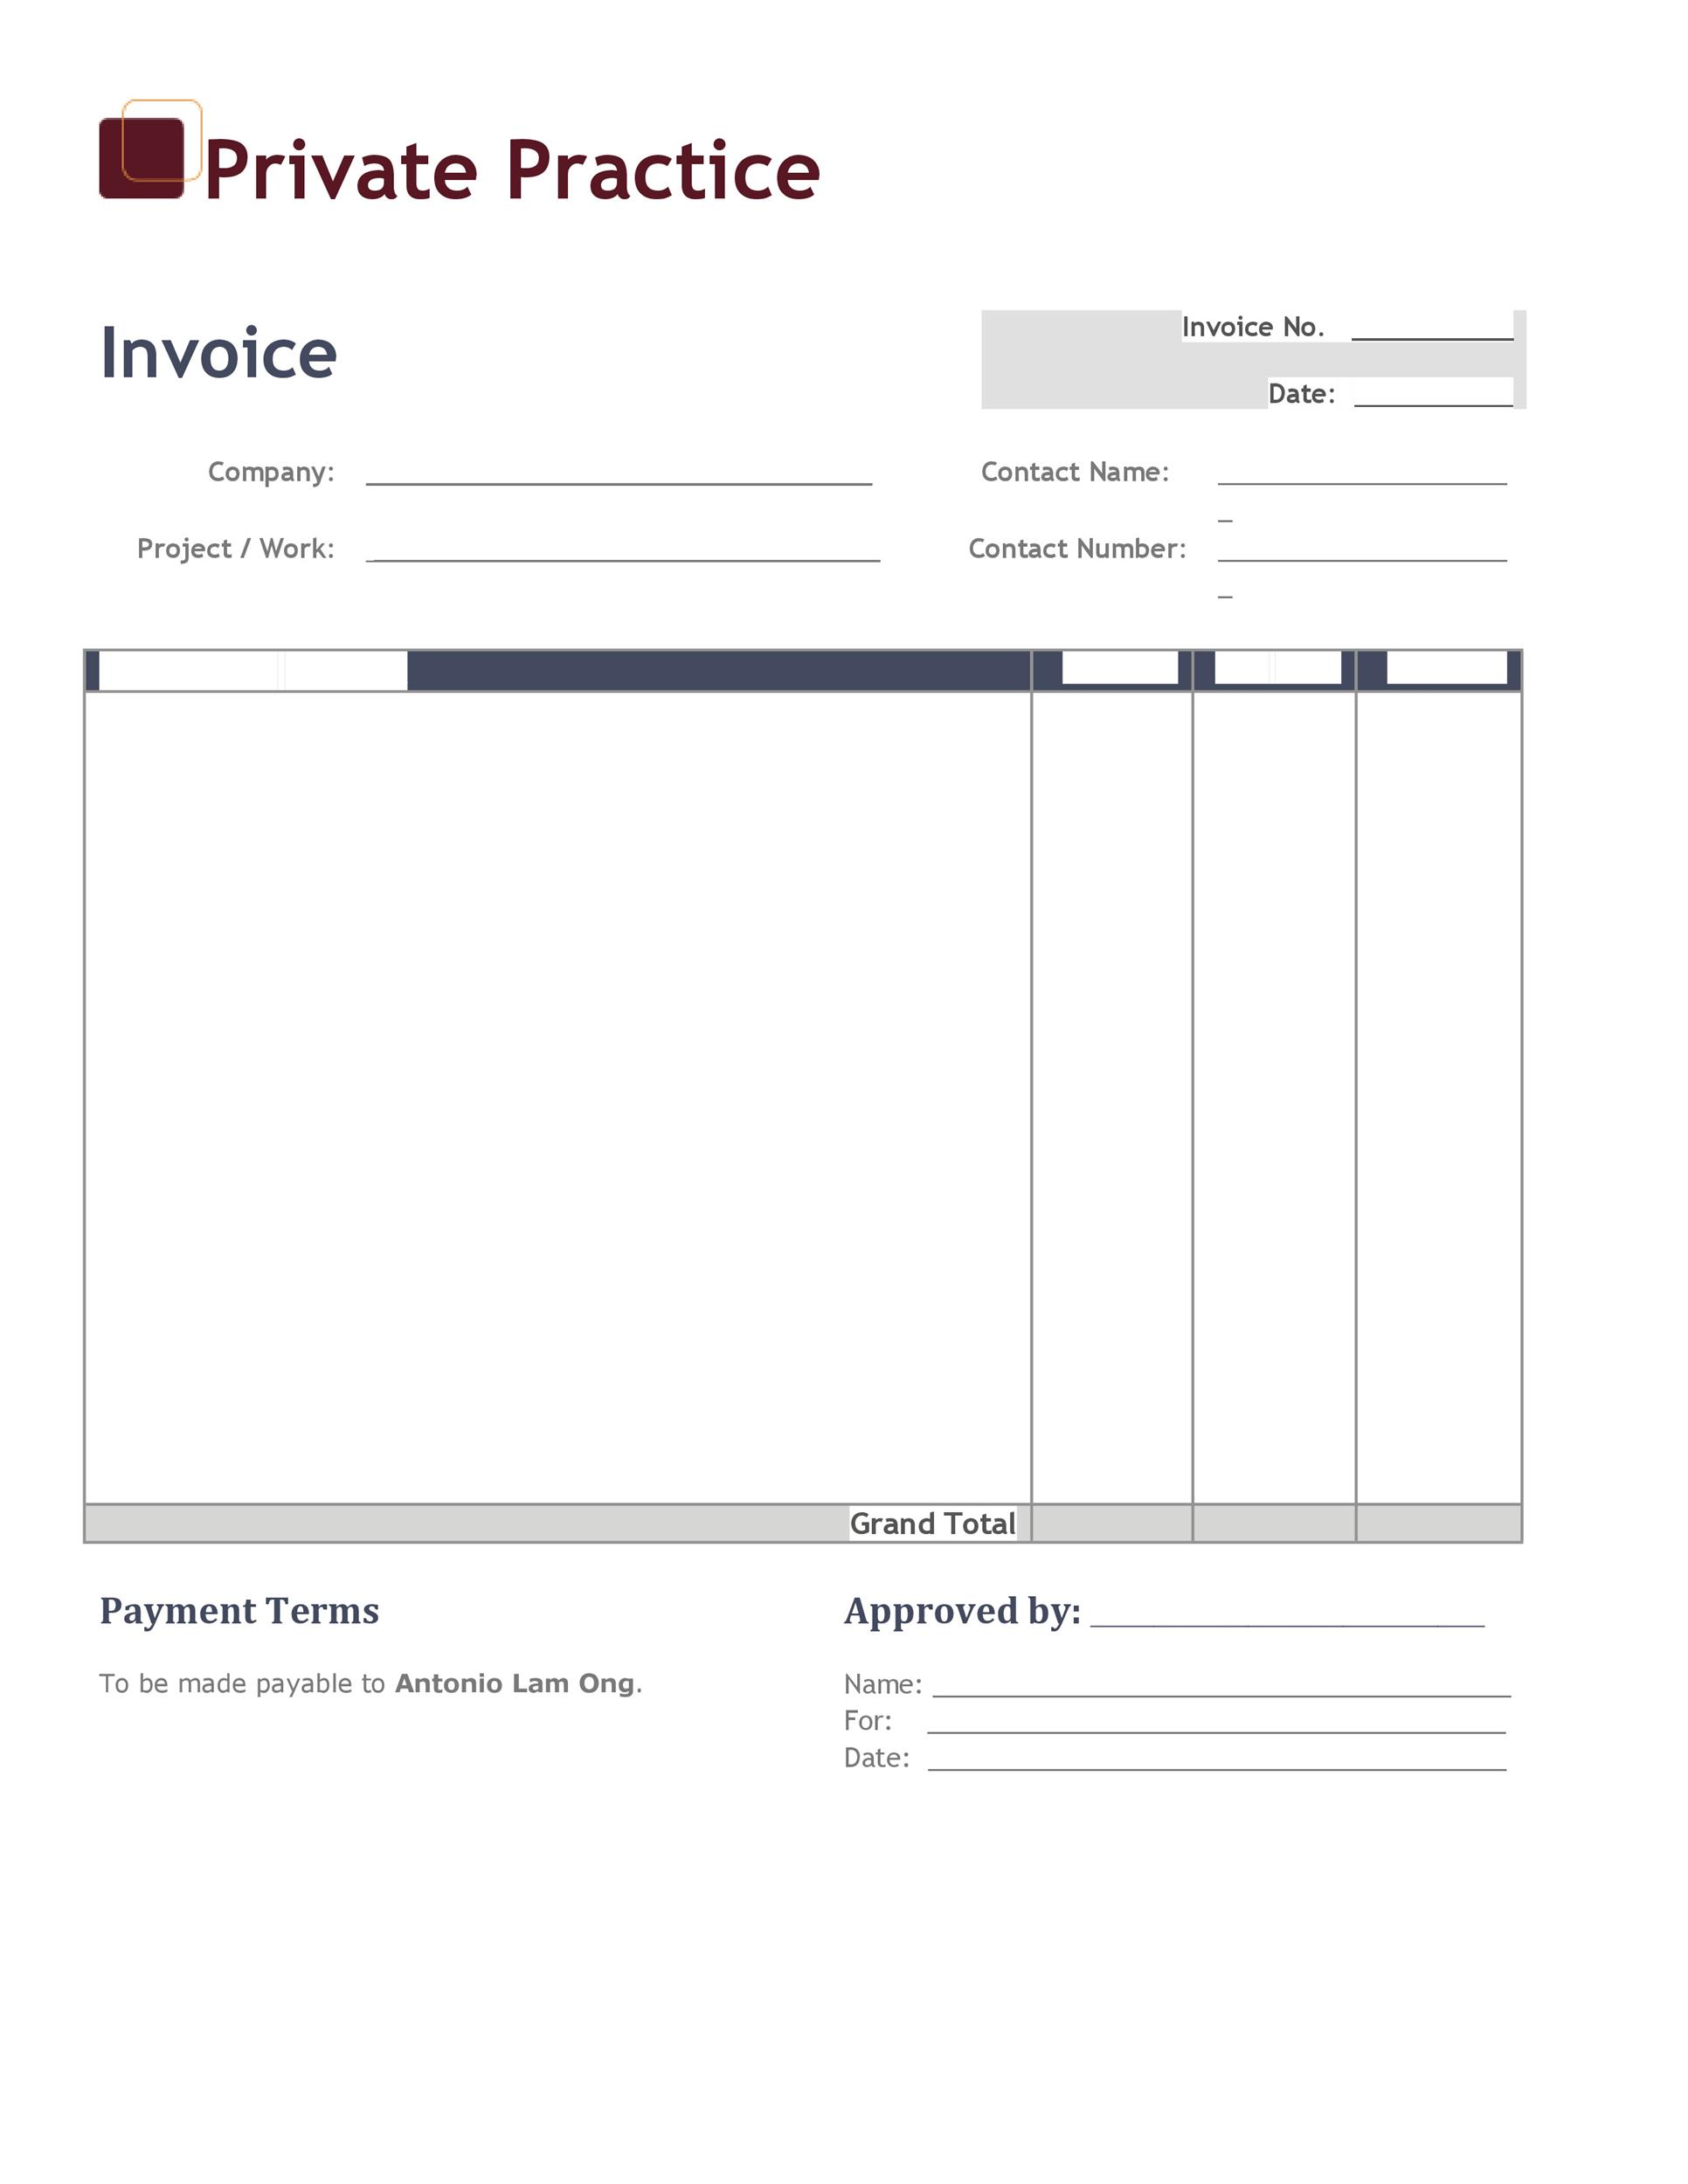 Printable Invoice Template 02  Printable Invoice Template Free